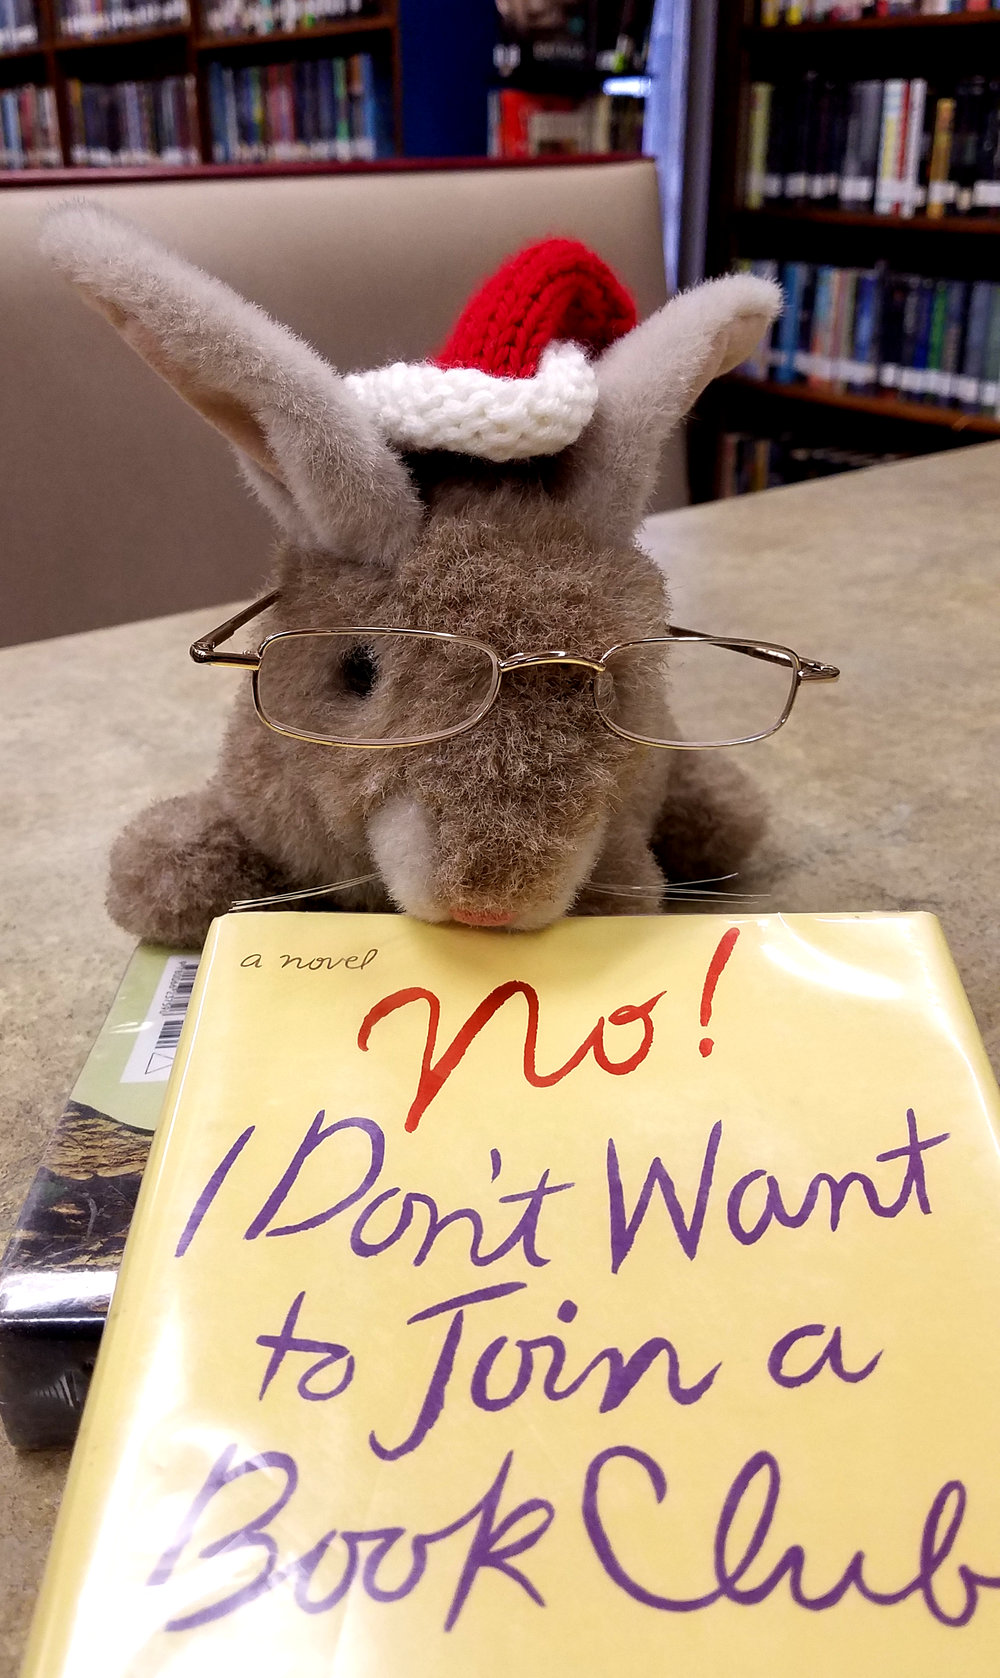 Dunkin the Library Bunny might not want to joint a book club, but you should!